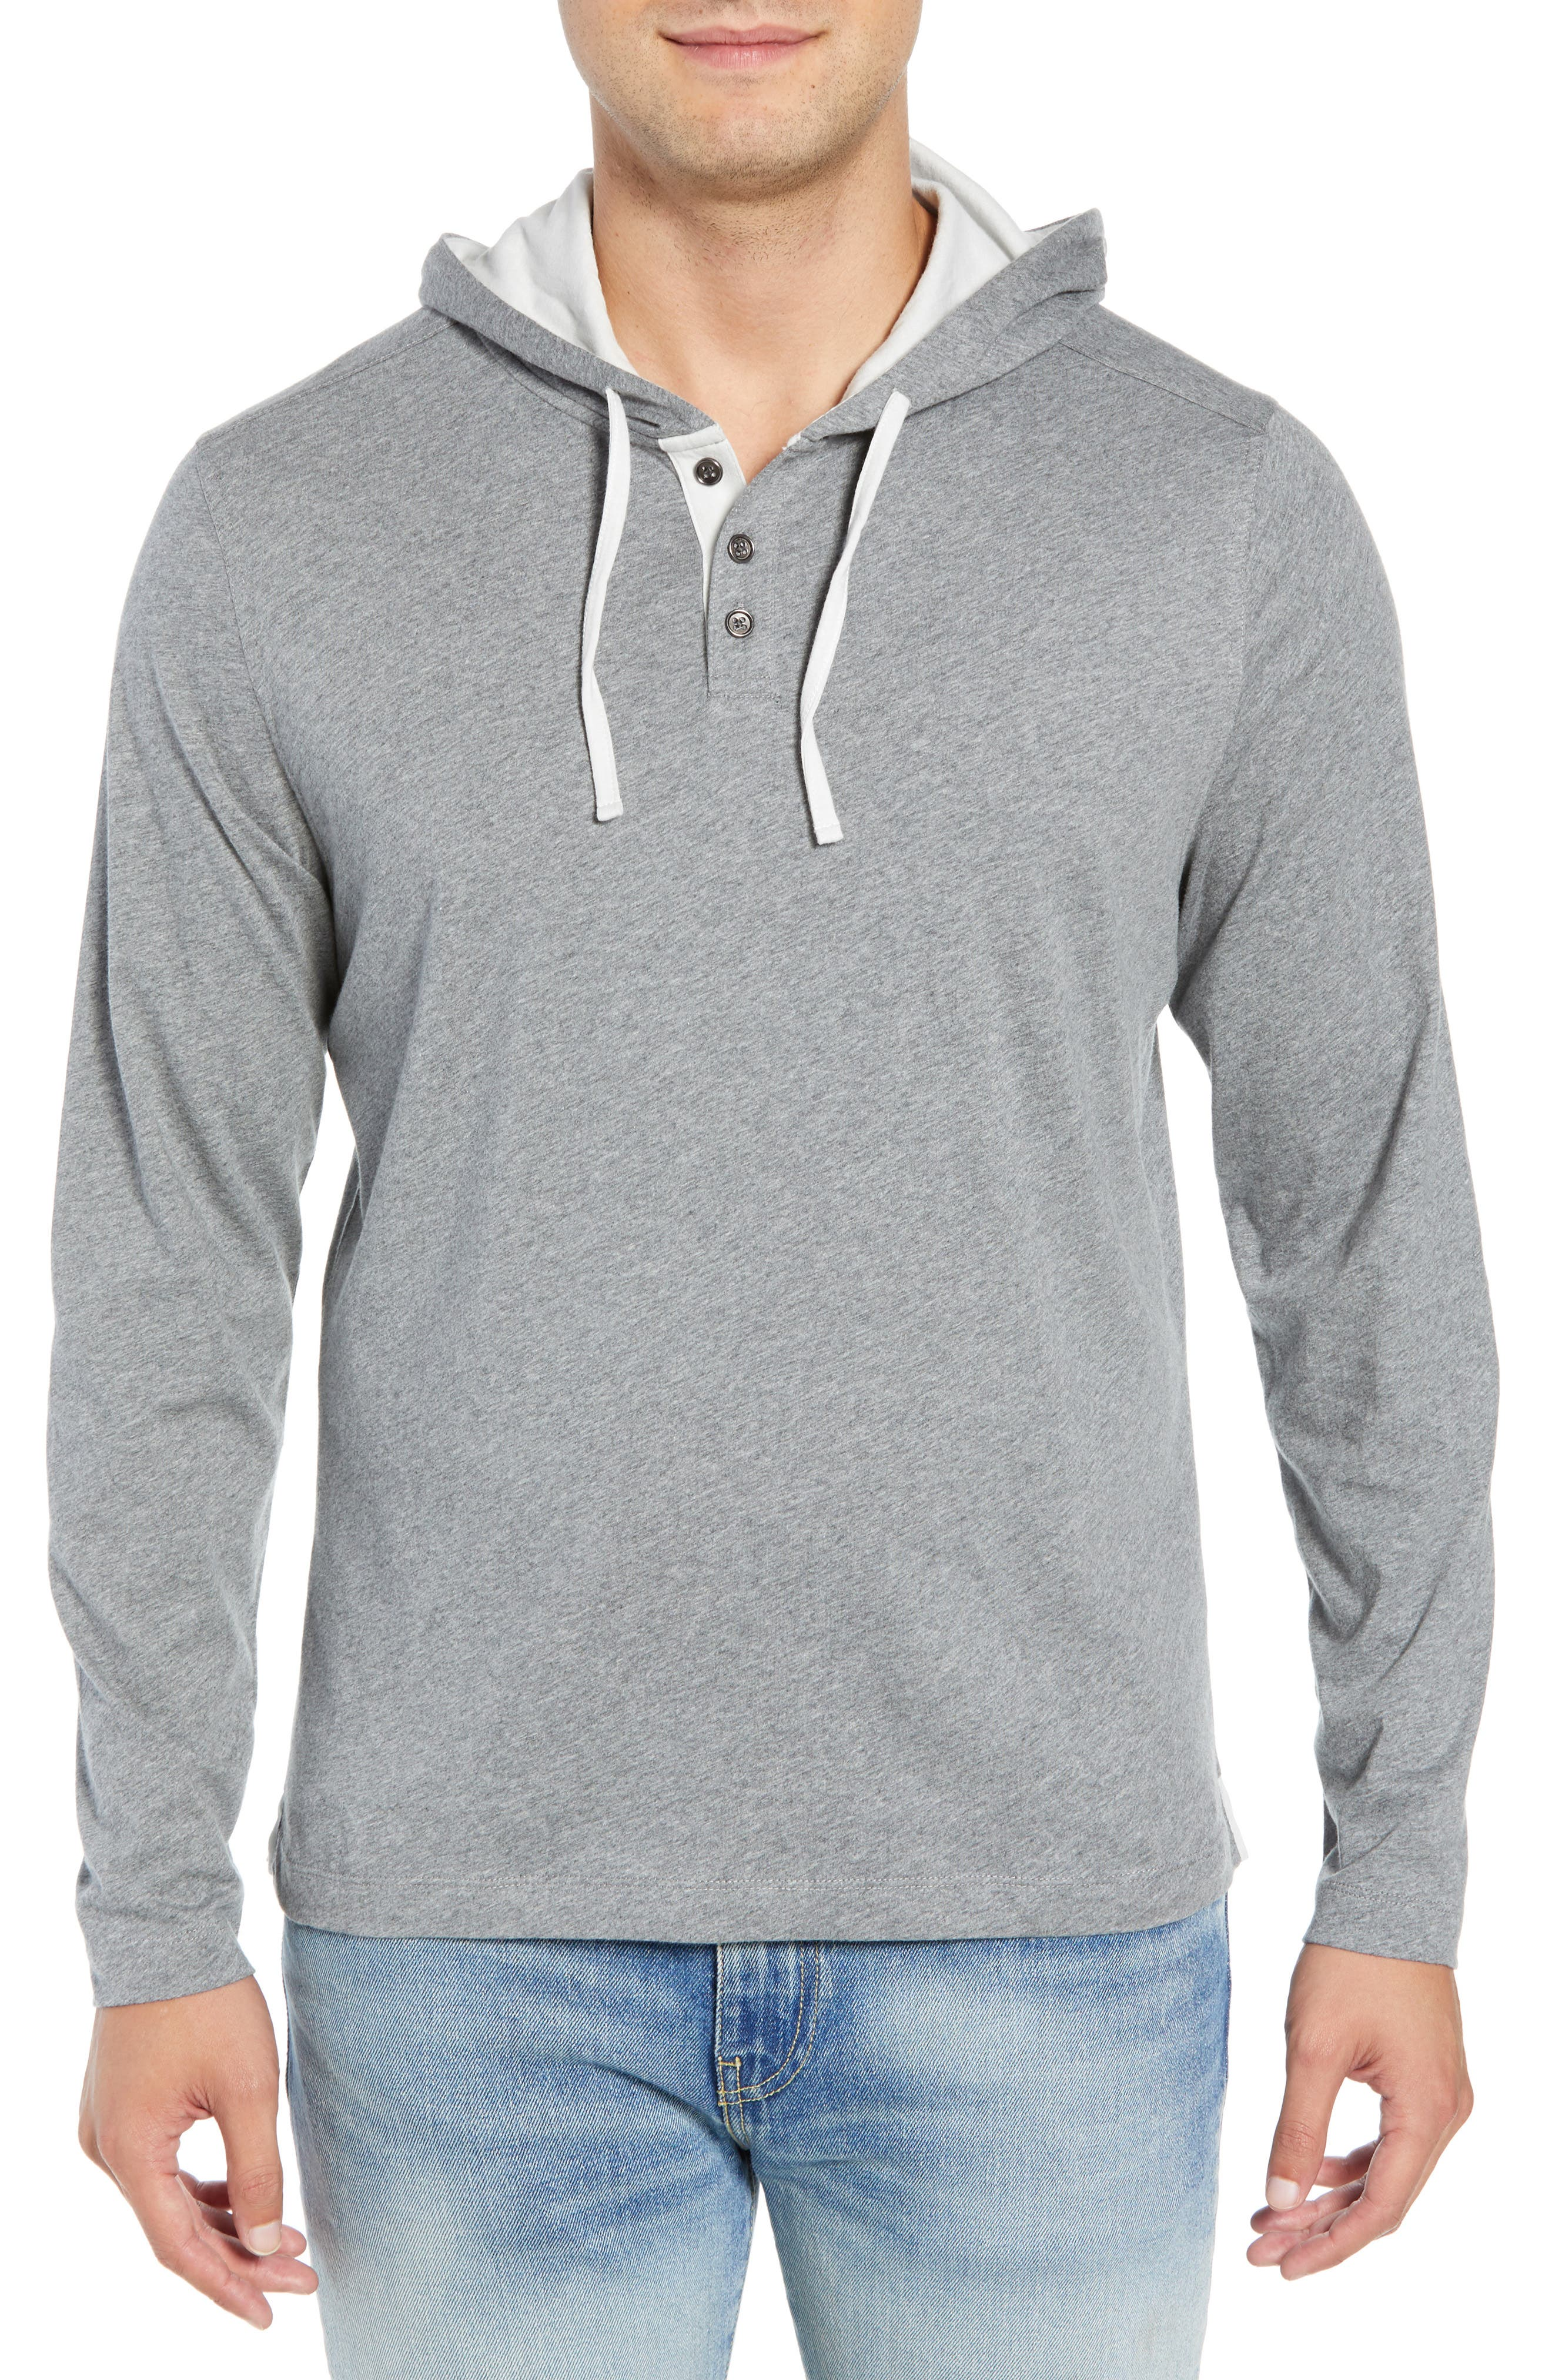 Carl Pullover Hoodie,                             Main thumbnail 1, color,                             MID GREY